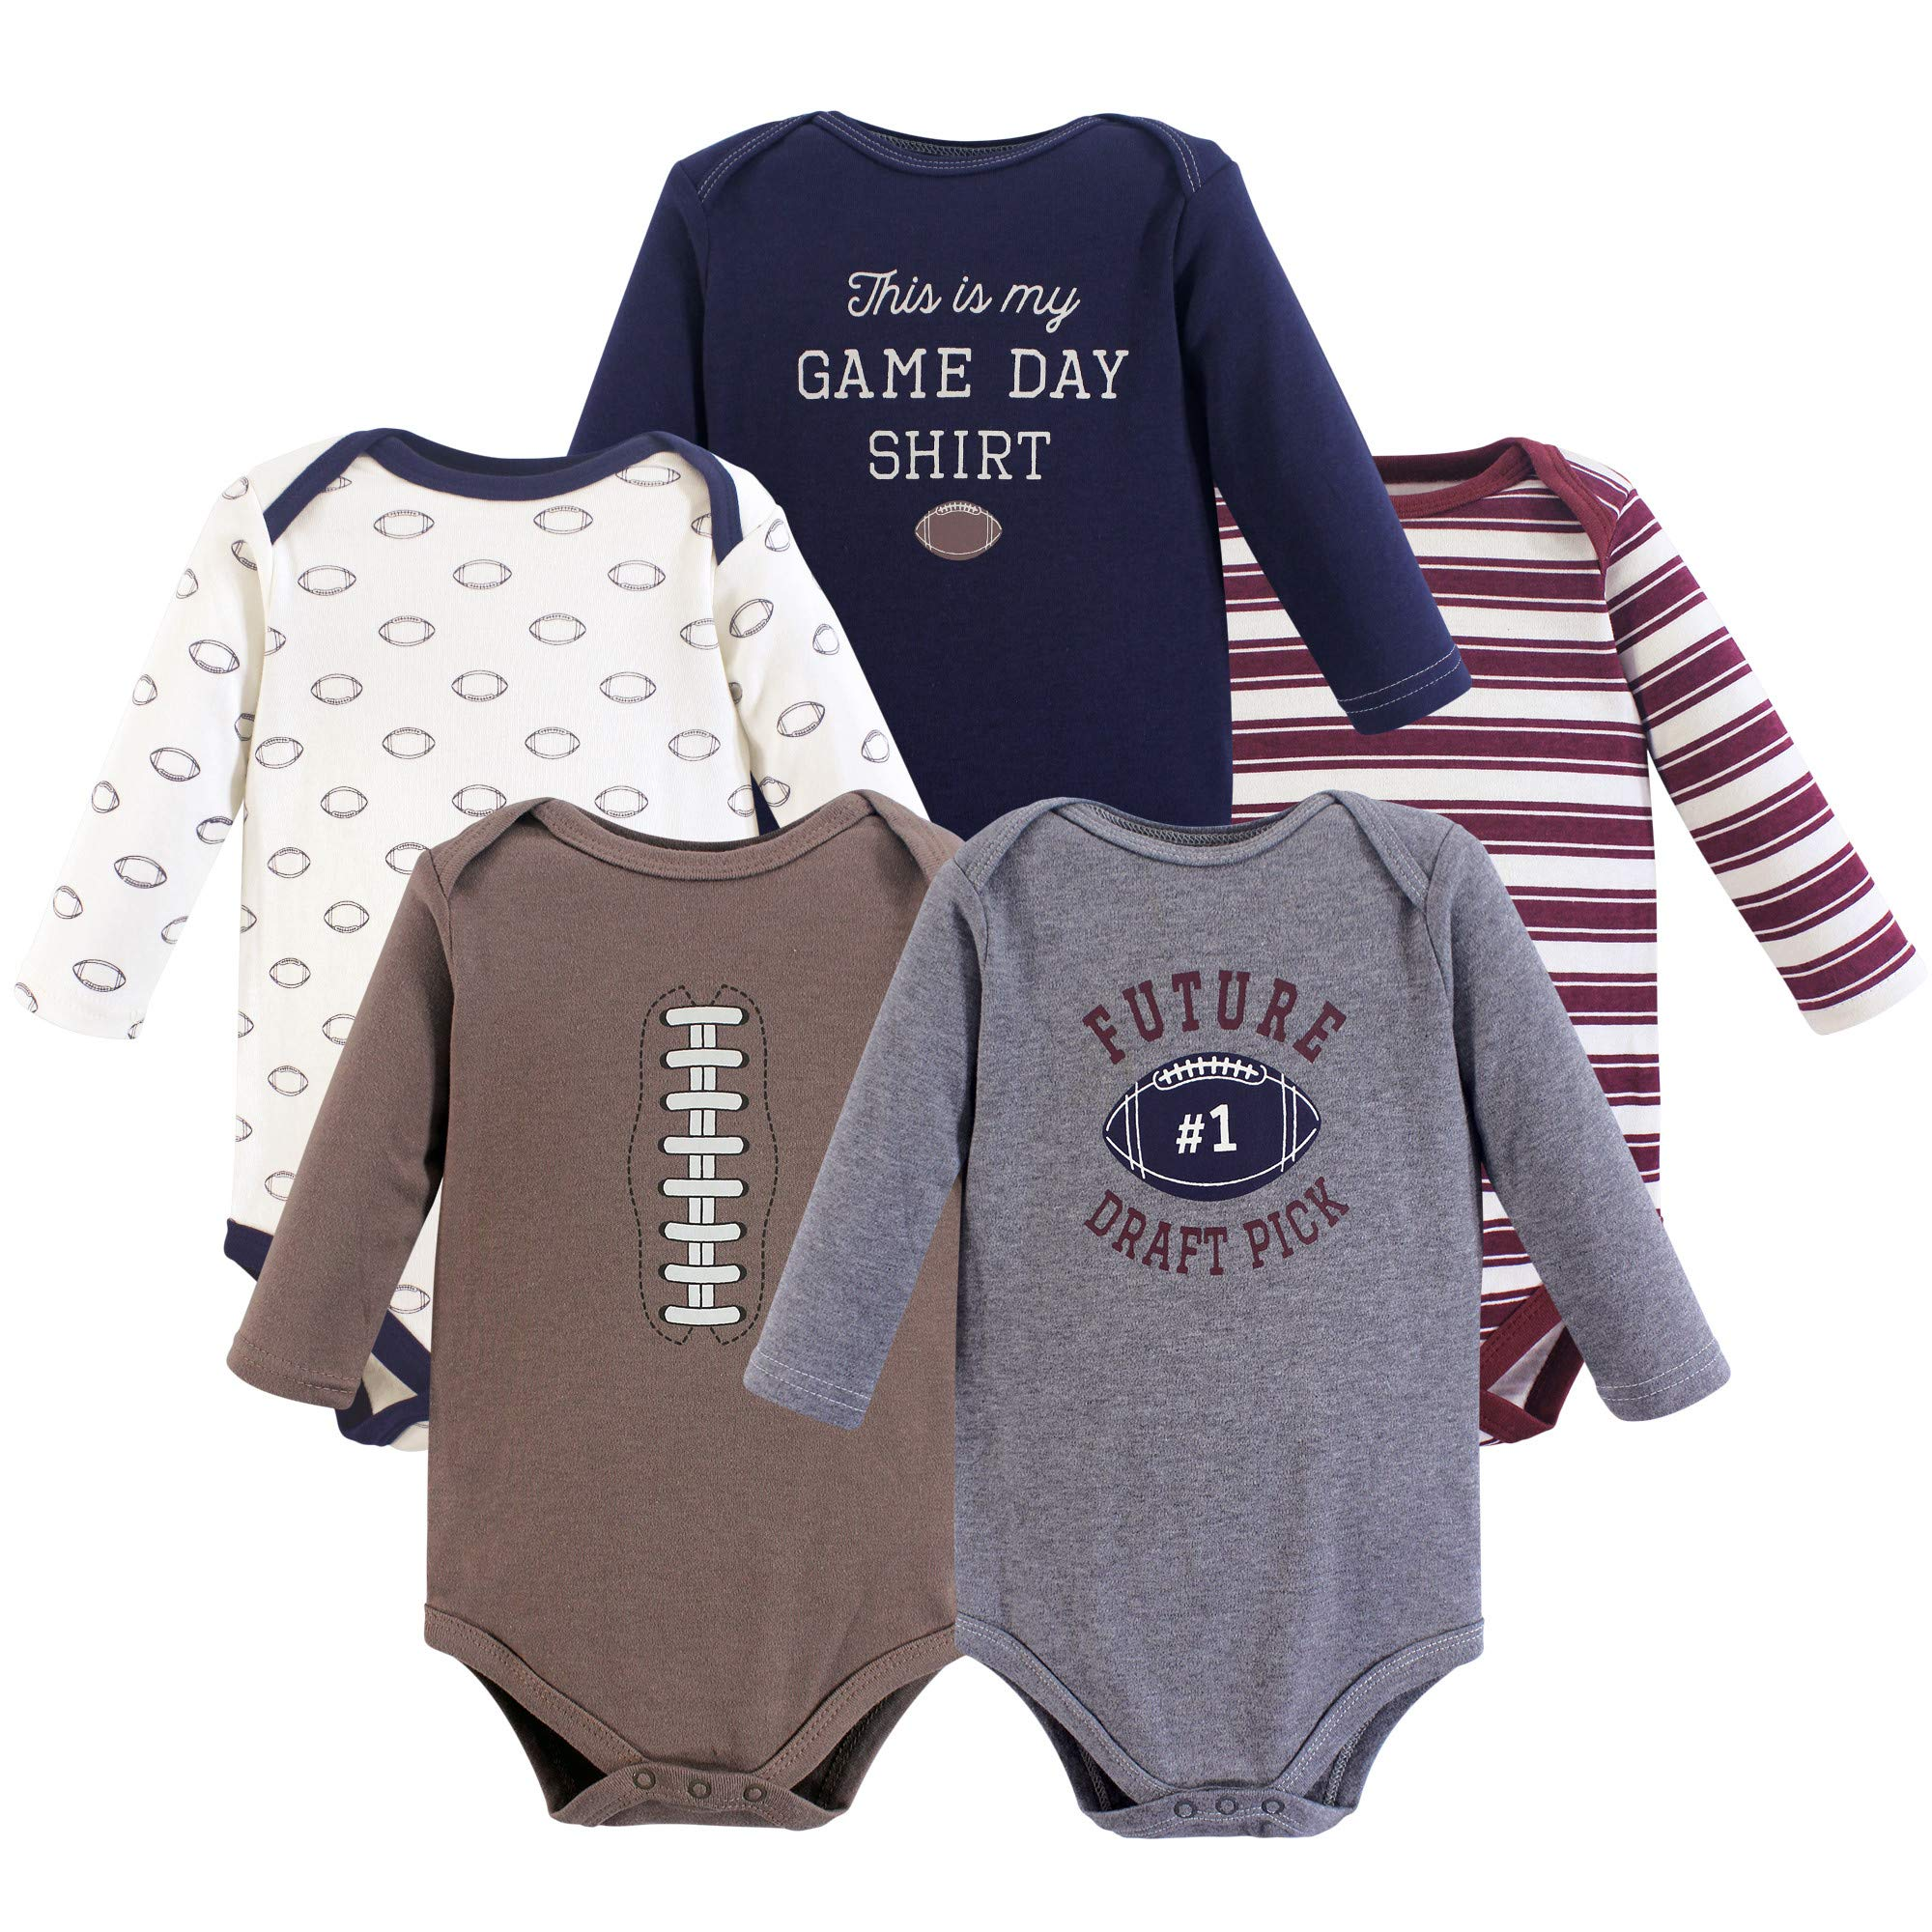 Hudson Baby Unisex Baby Long Sleeve Cotton Bodysuits, Football Season Long Sleeve 5 Pack, 12-18 Months (18M) by Hudson Baby